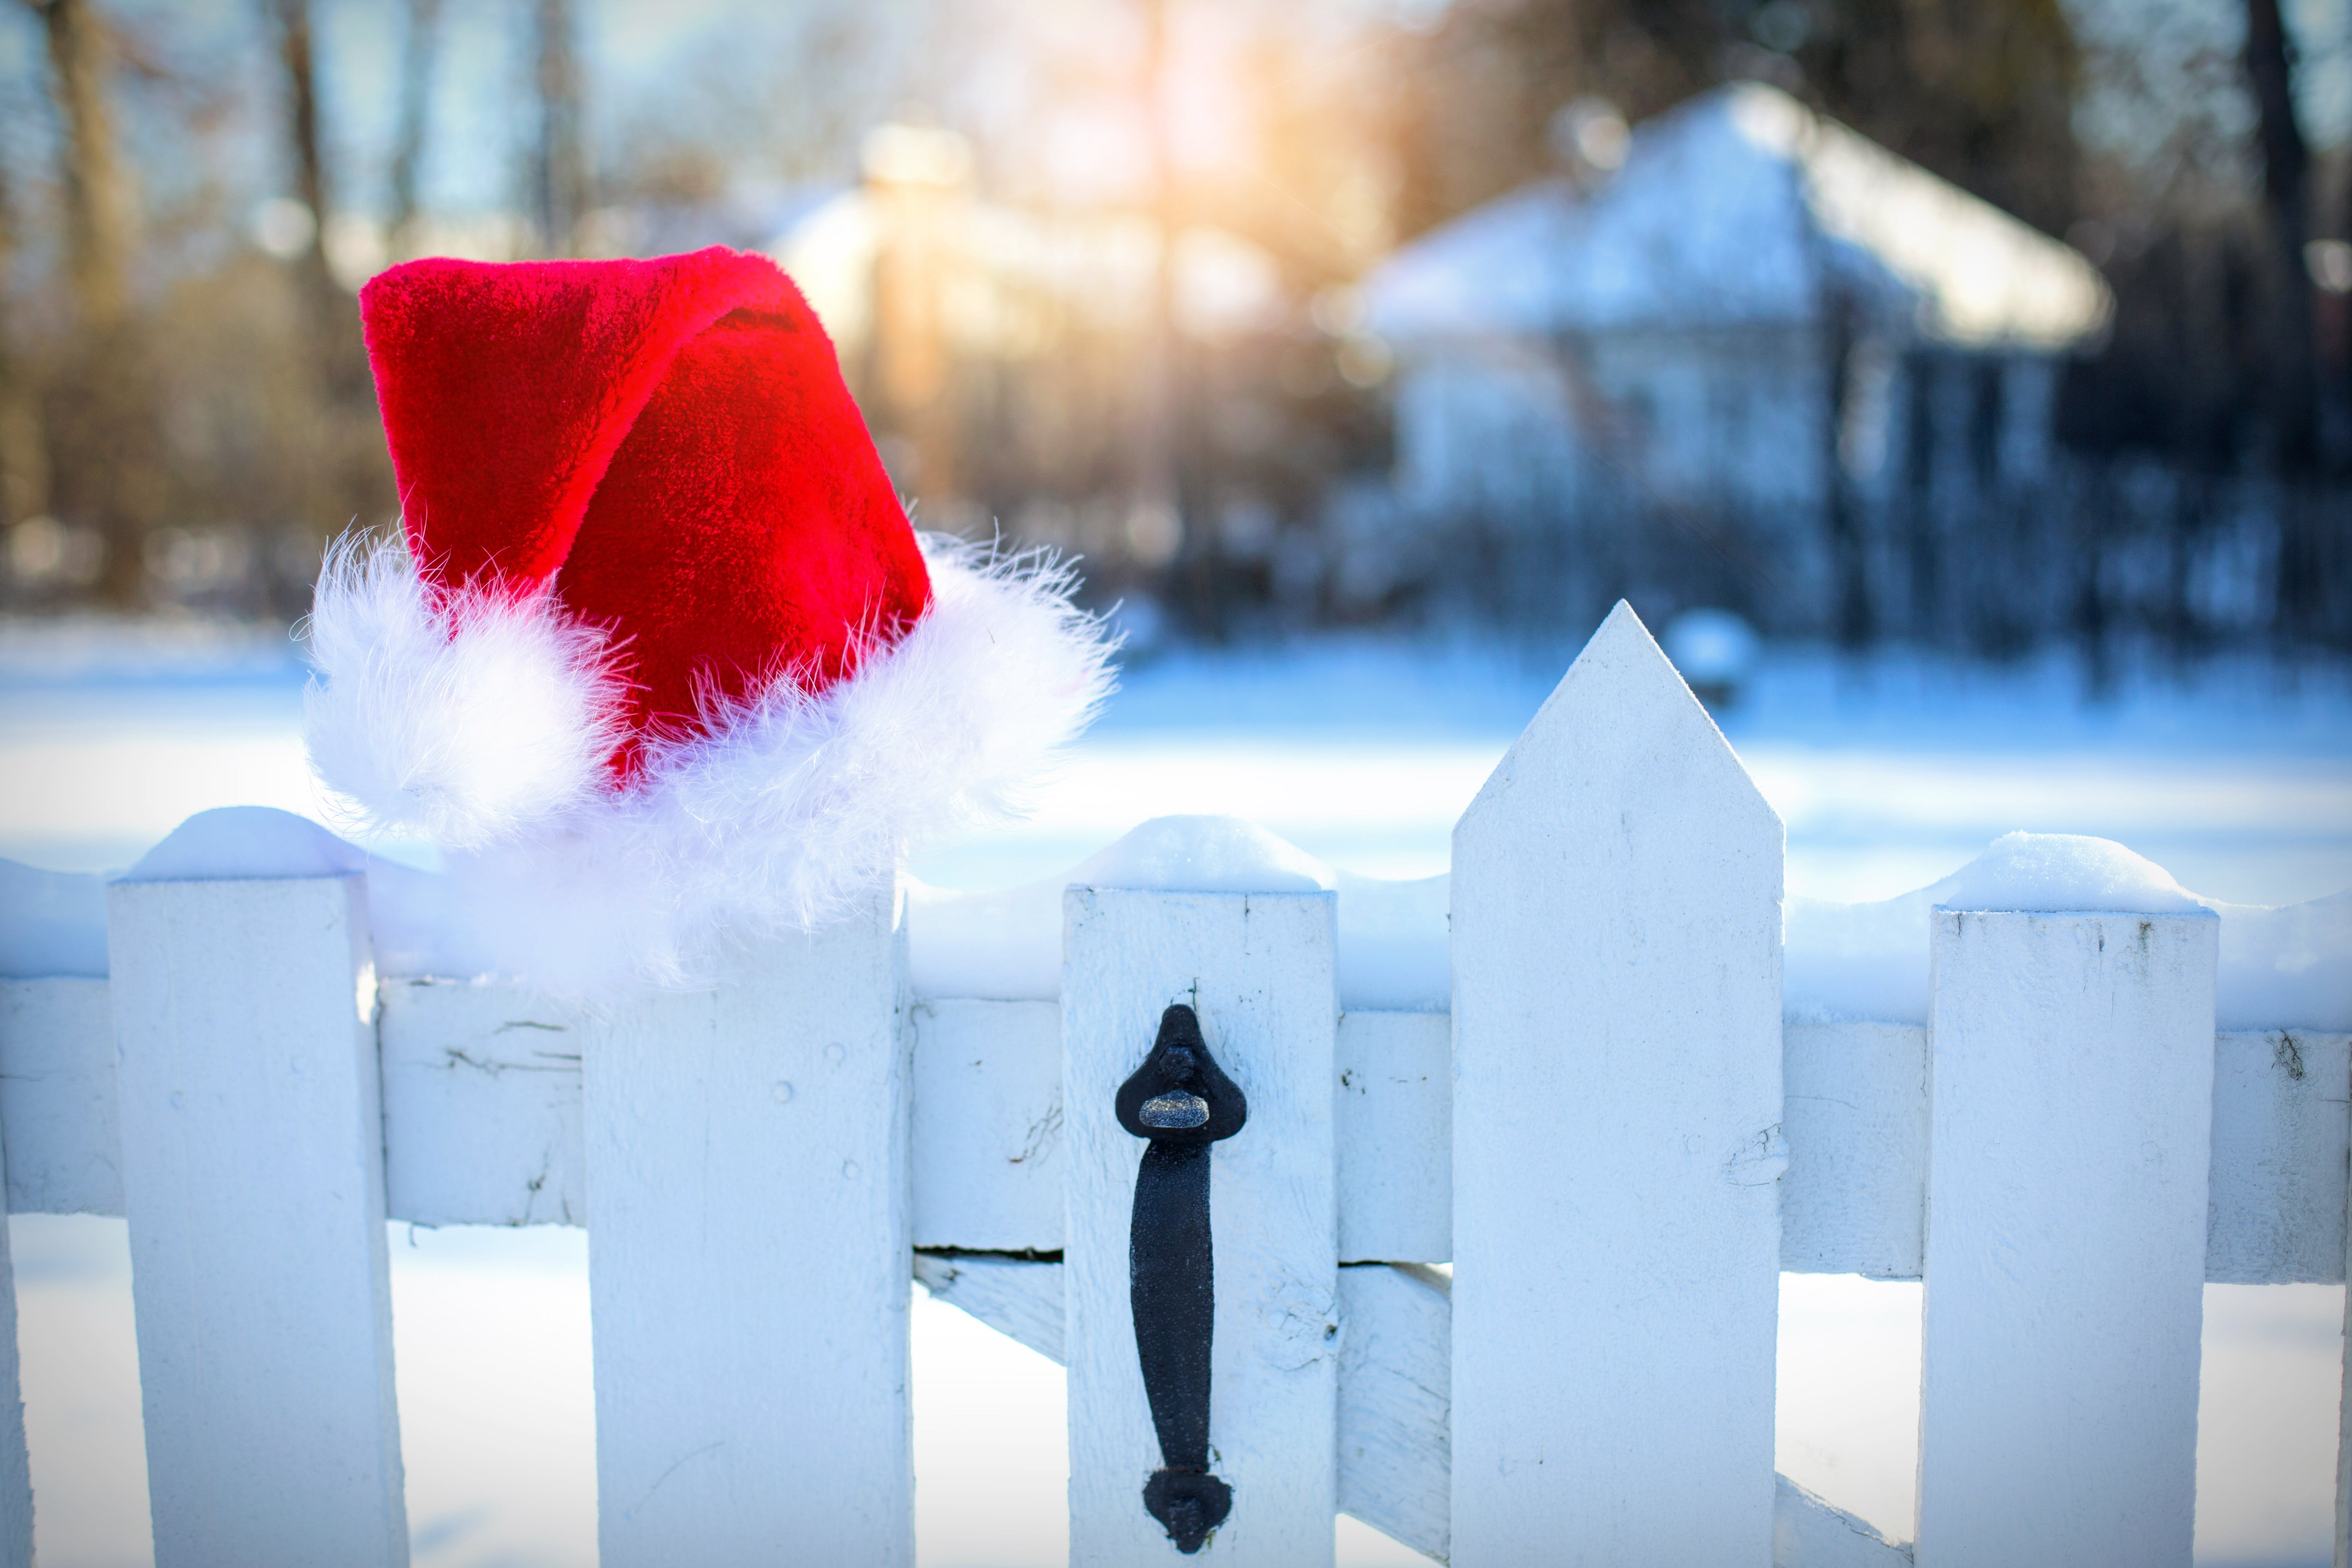 Free stock photo of snow, holiday, winter, hat